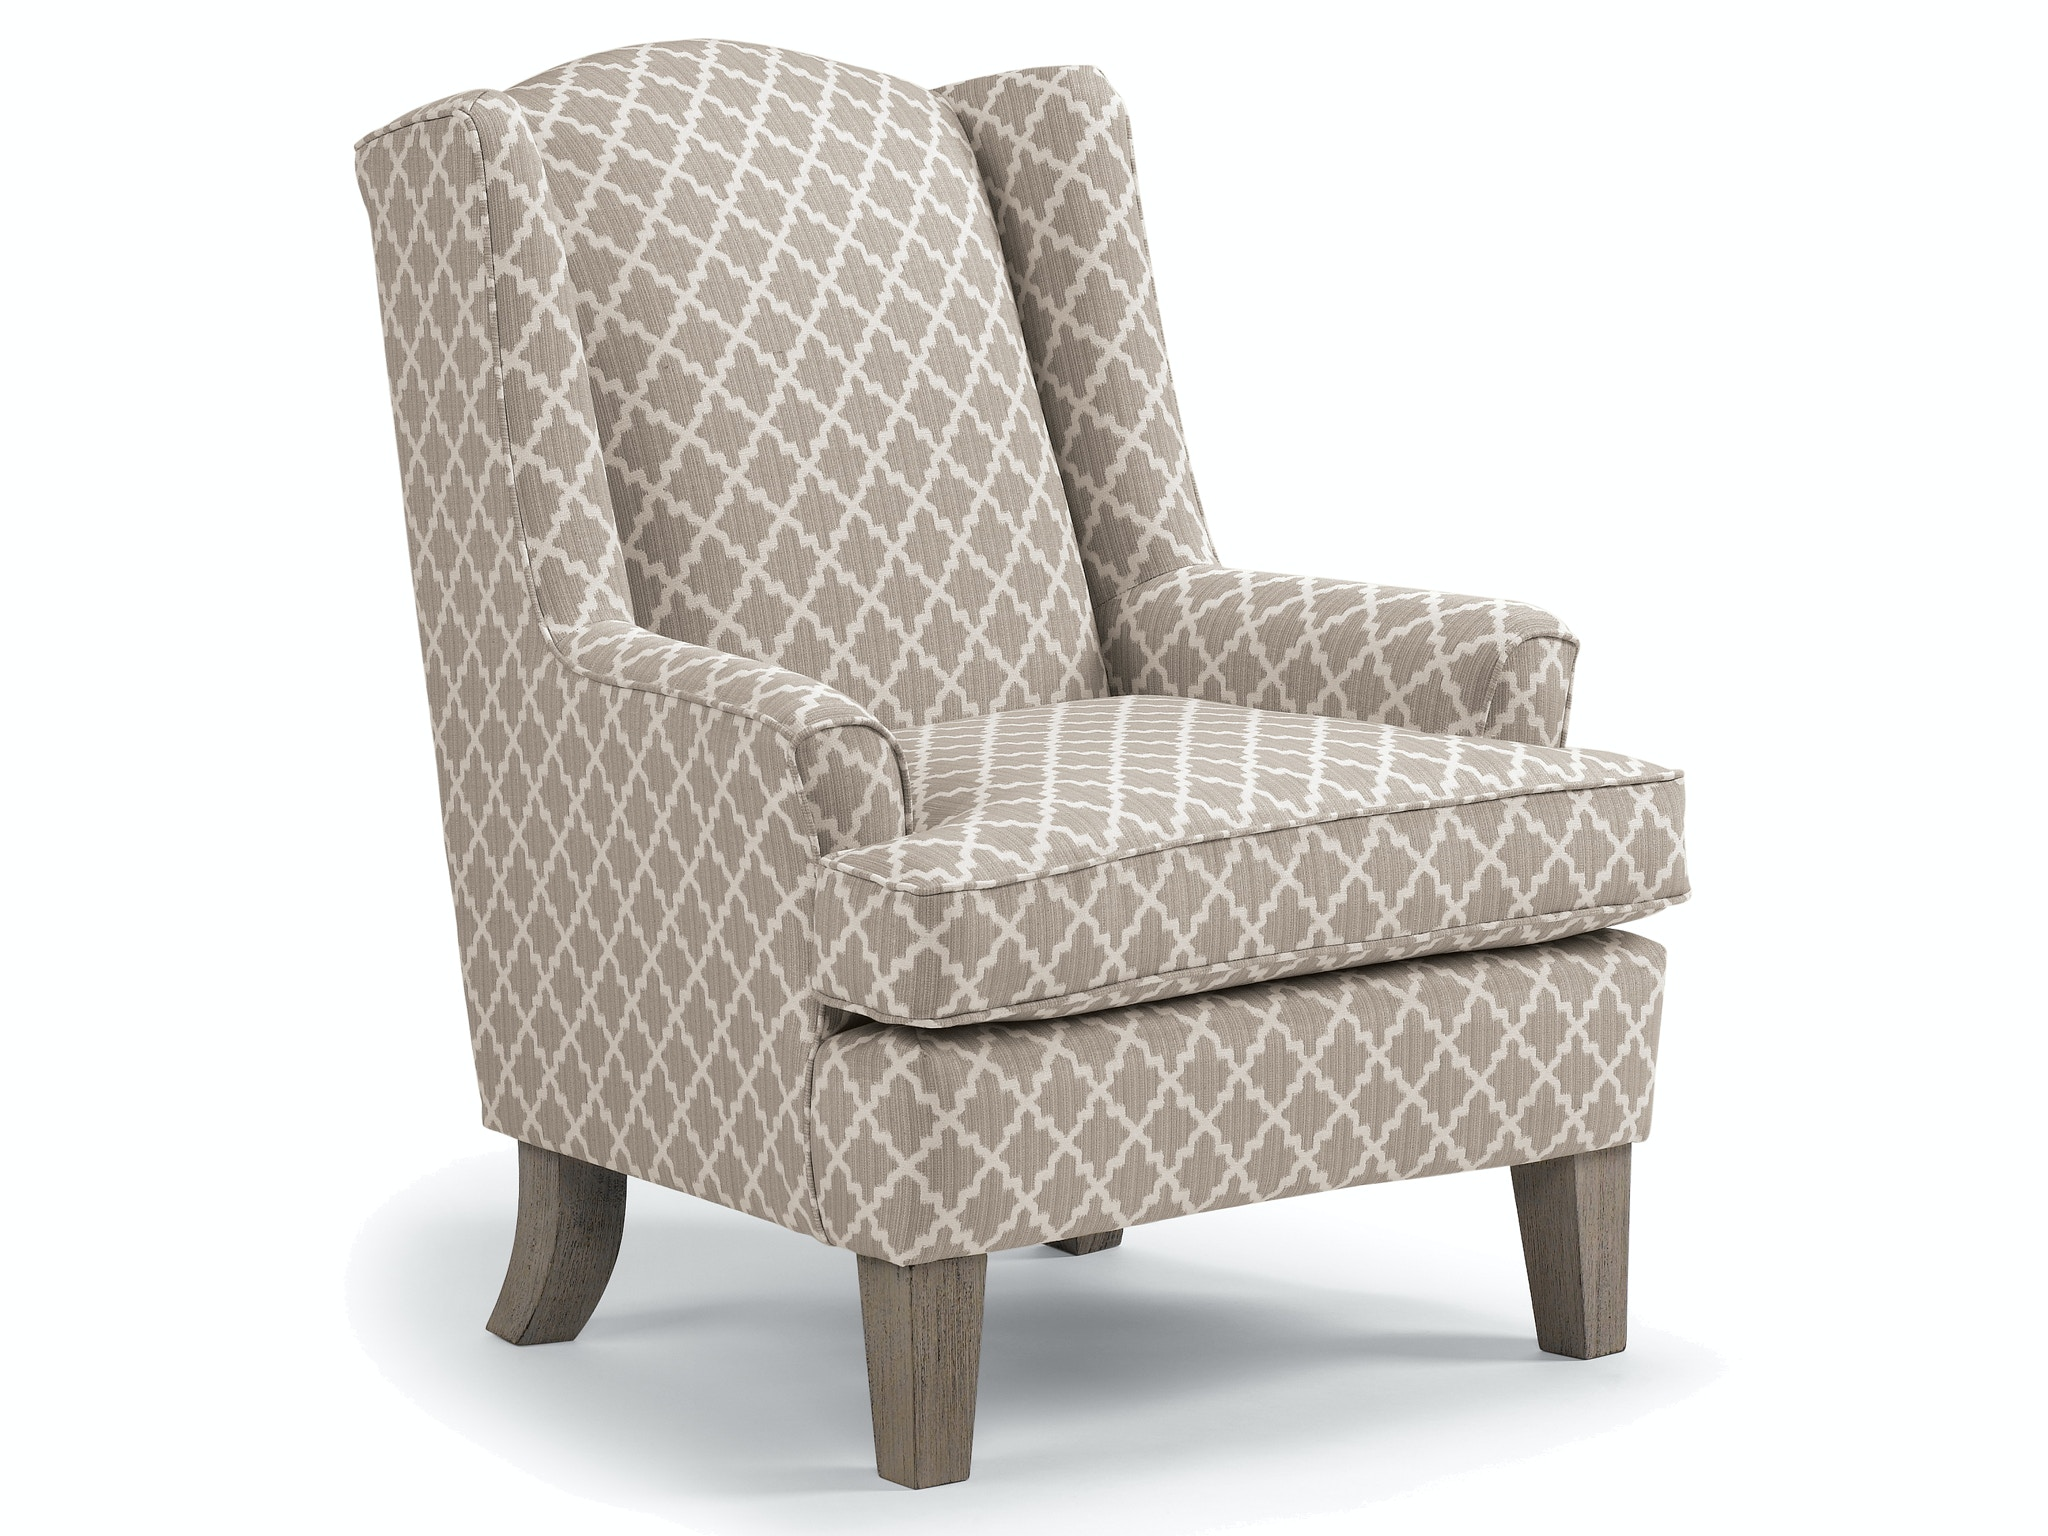 Cheap Furniture Store Gainesville Fl With Furniture Store Gainesville Fl